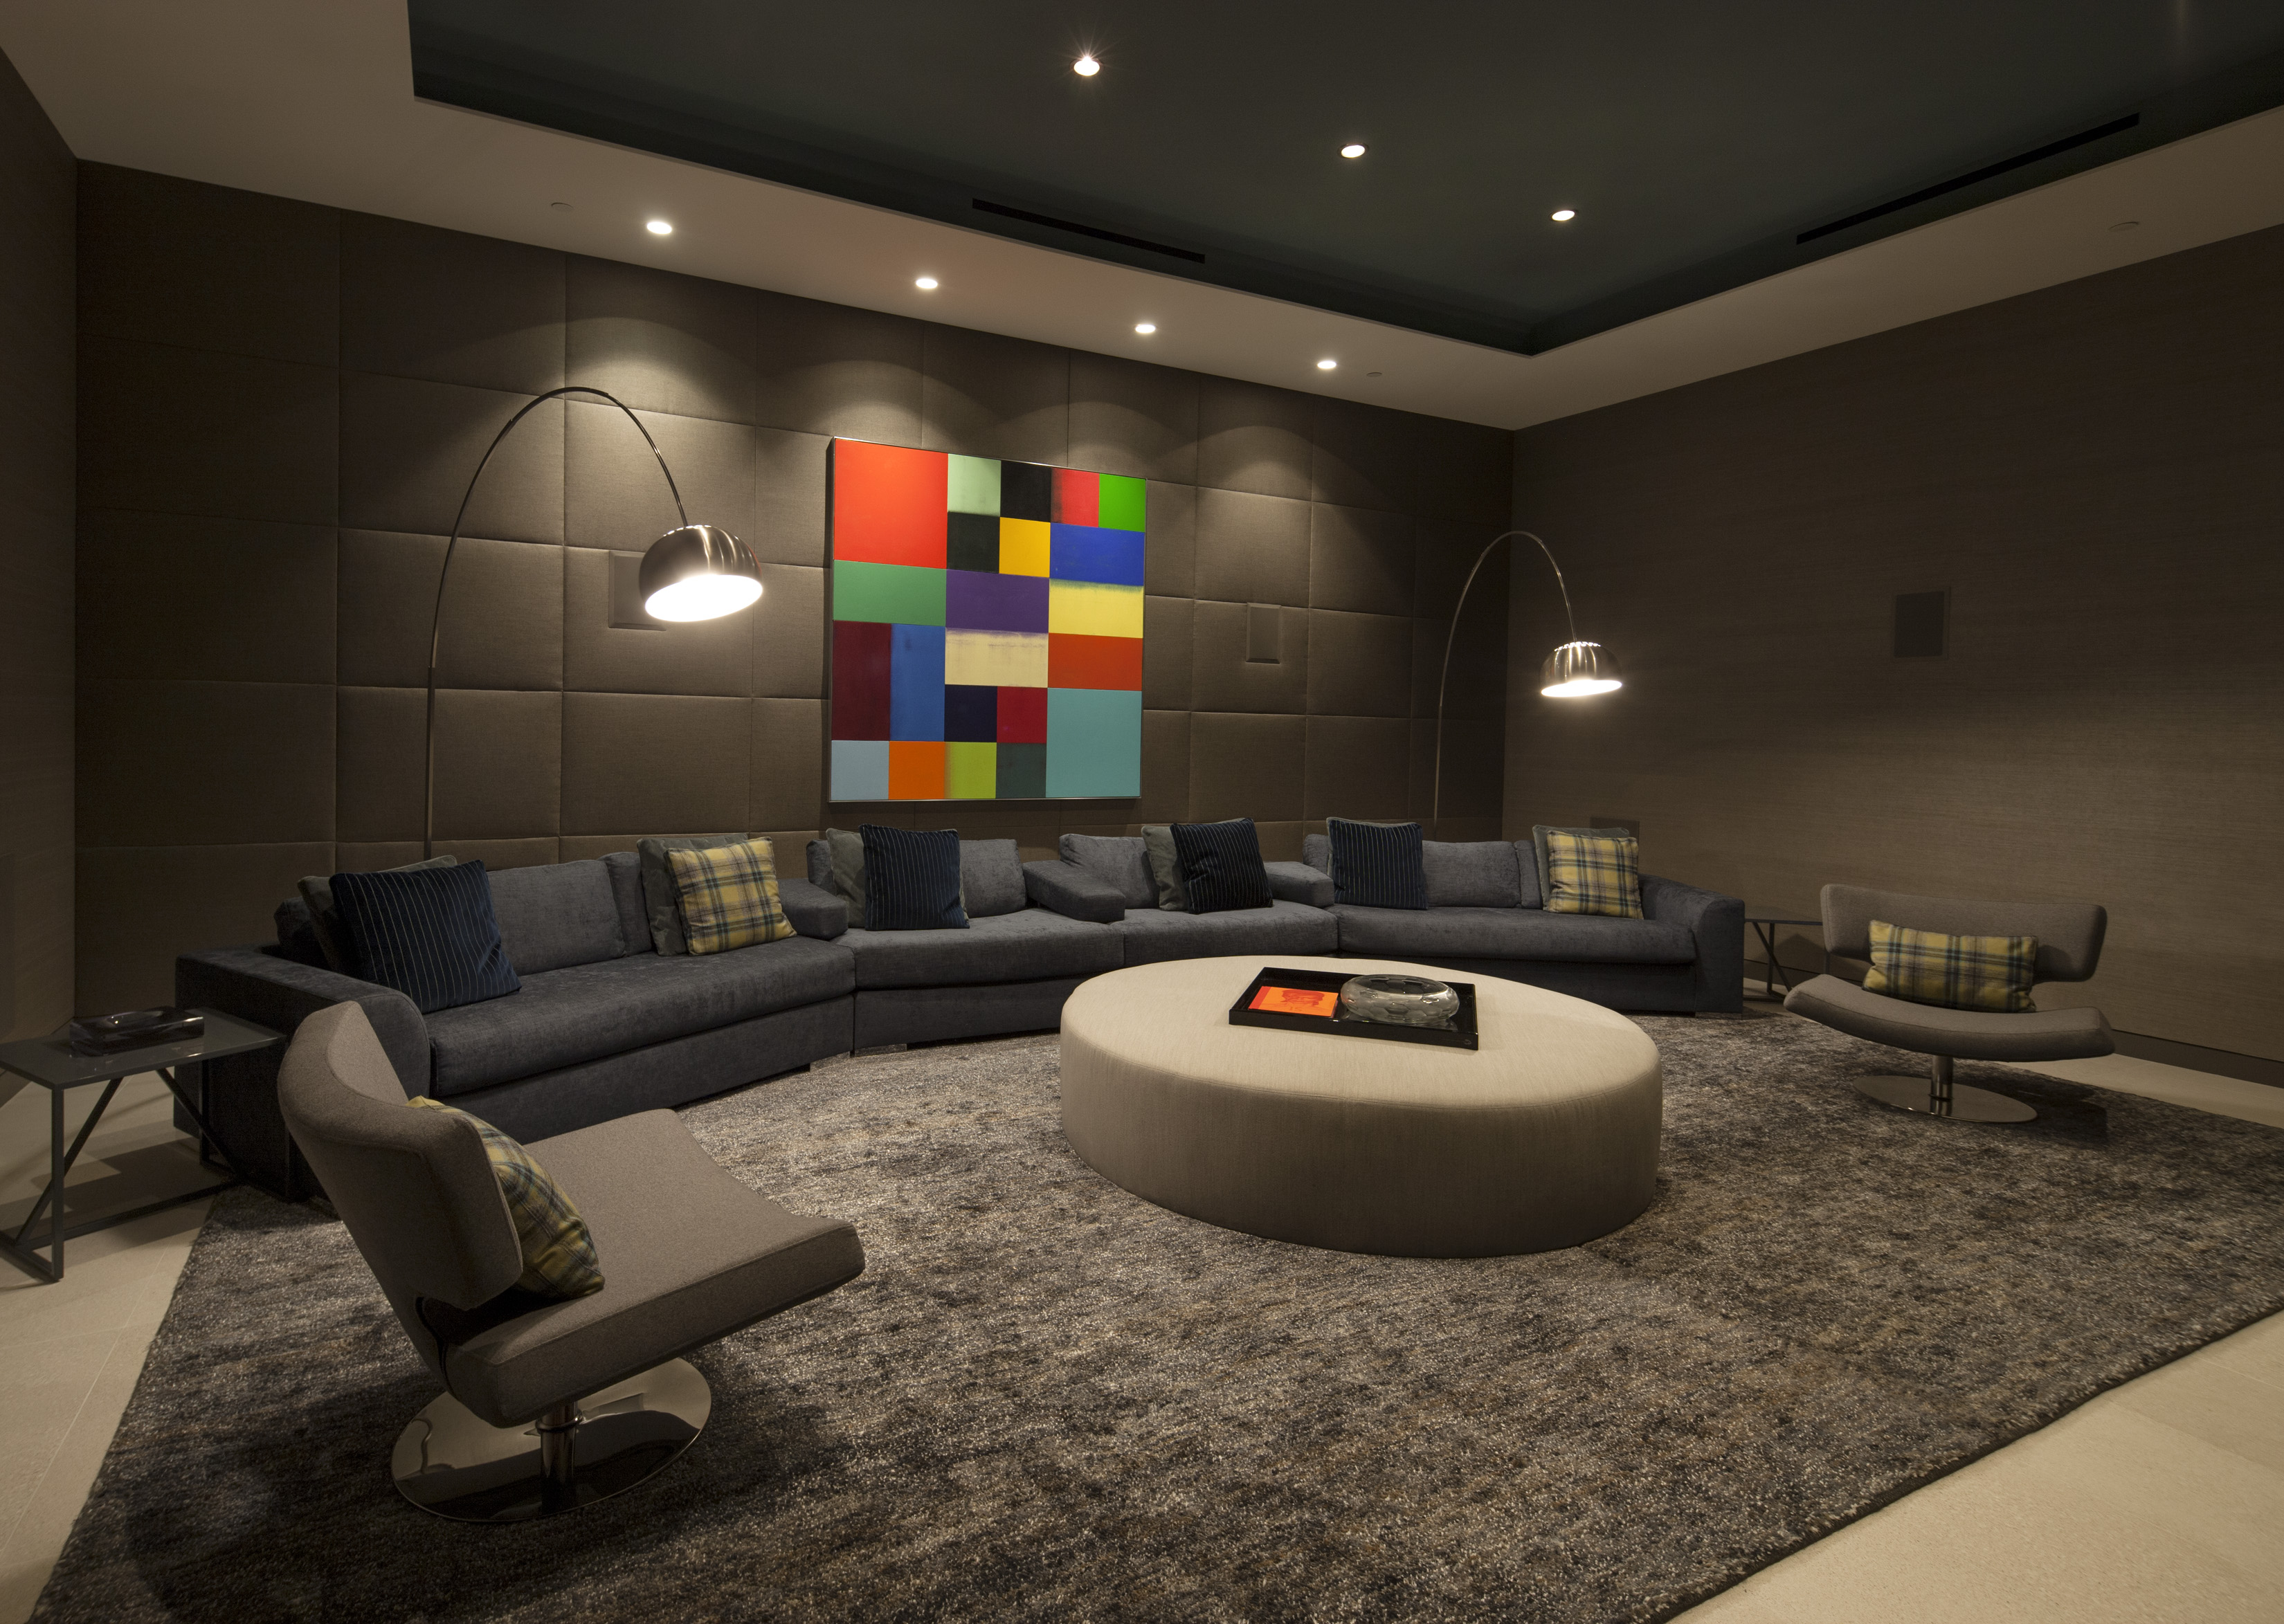 Home cinema room has practical and comfortable seating from which to